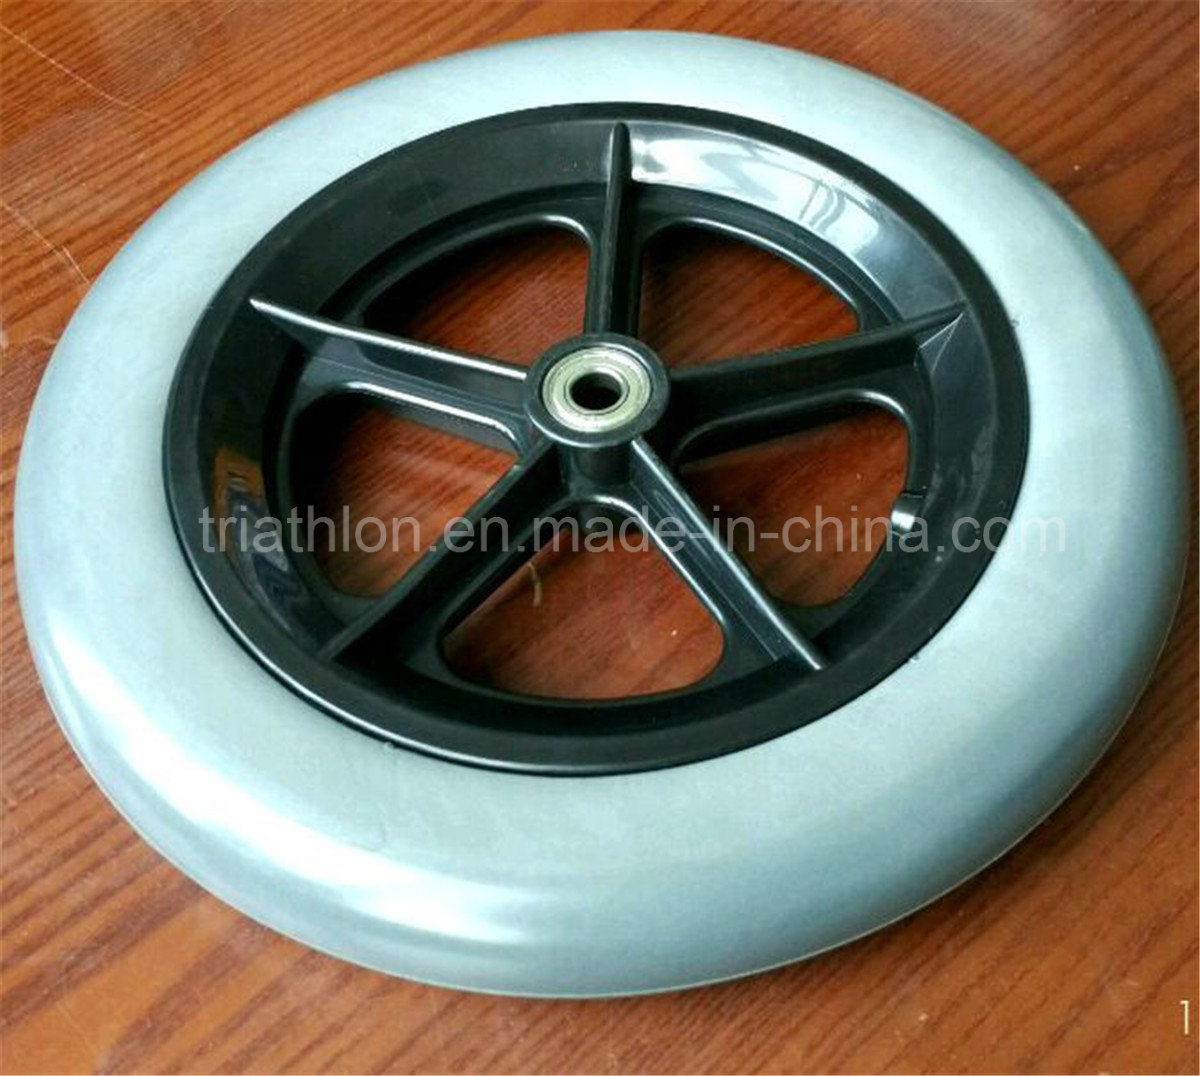 "8"" 9"" 10"" 12"" 14"" 16"" 18"" 20"" 22"" 24"" 26"" Plastic Spoked Wheel with Flat Free Foam Tire"